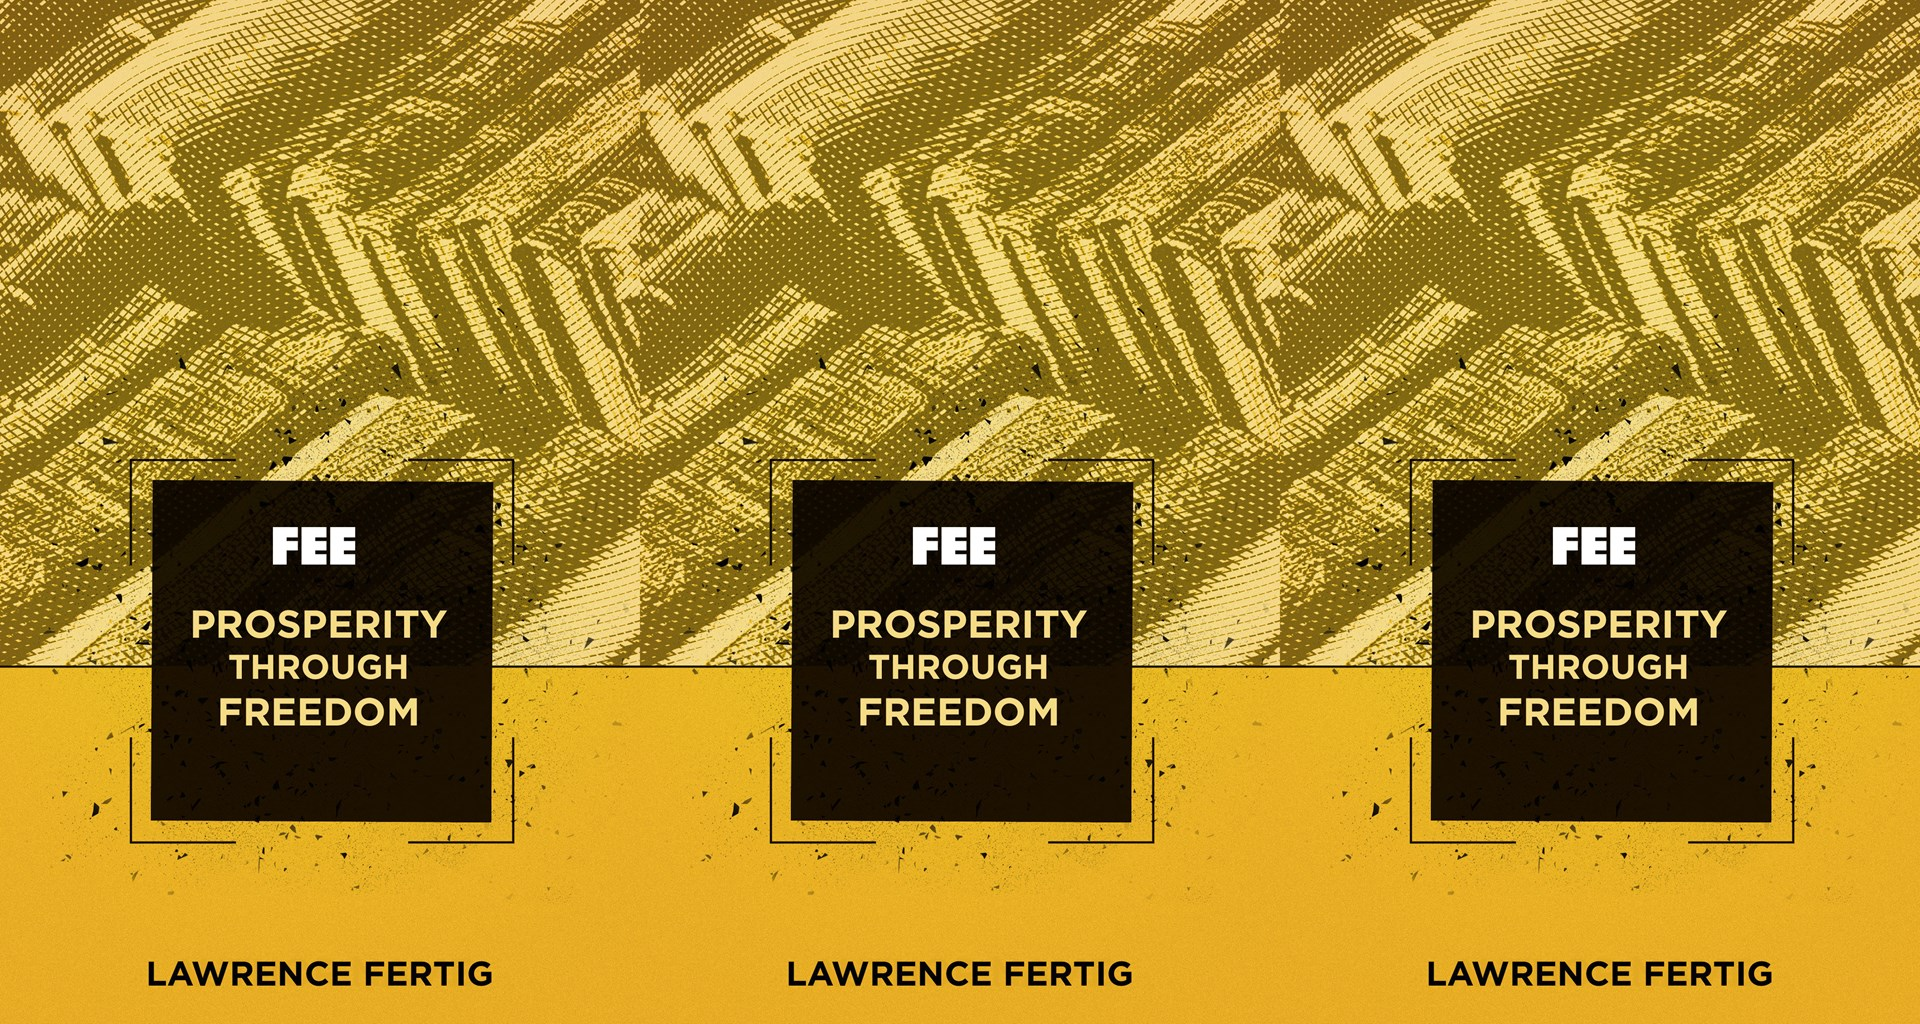 Prosperity through freedom foundation for economic education wednesday july 26 2017 fandeluxe Gallery